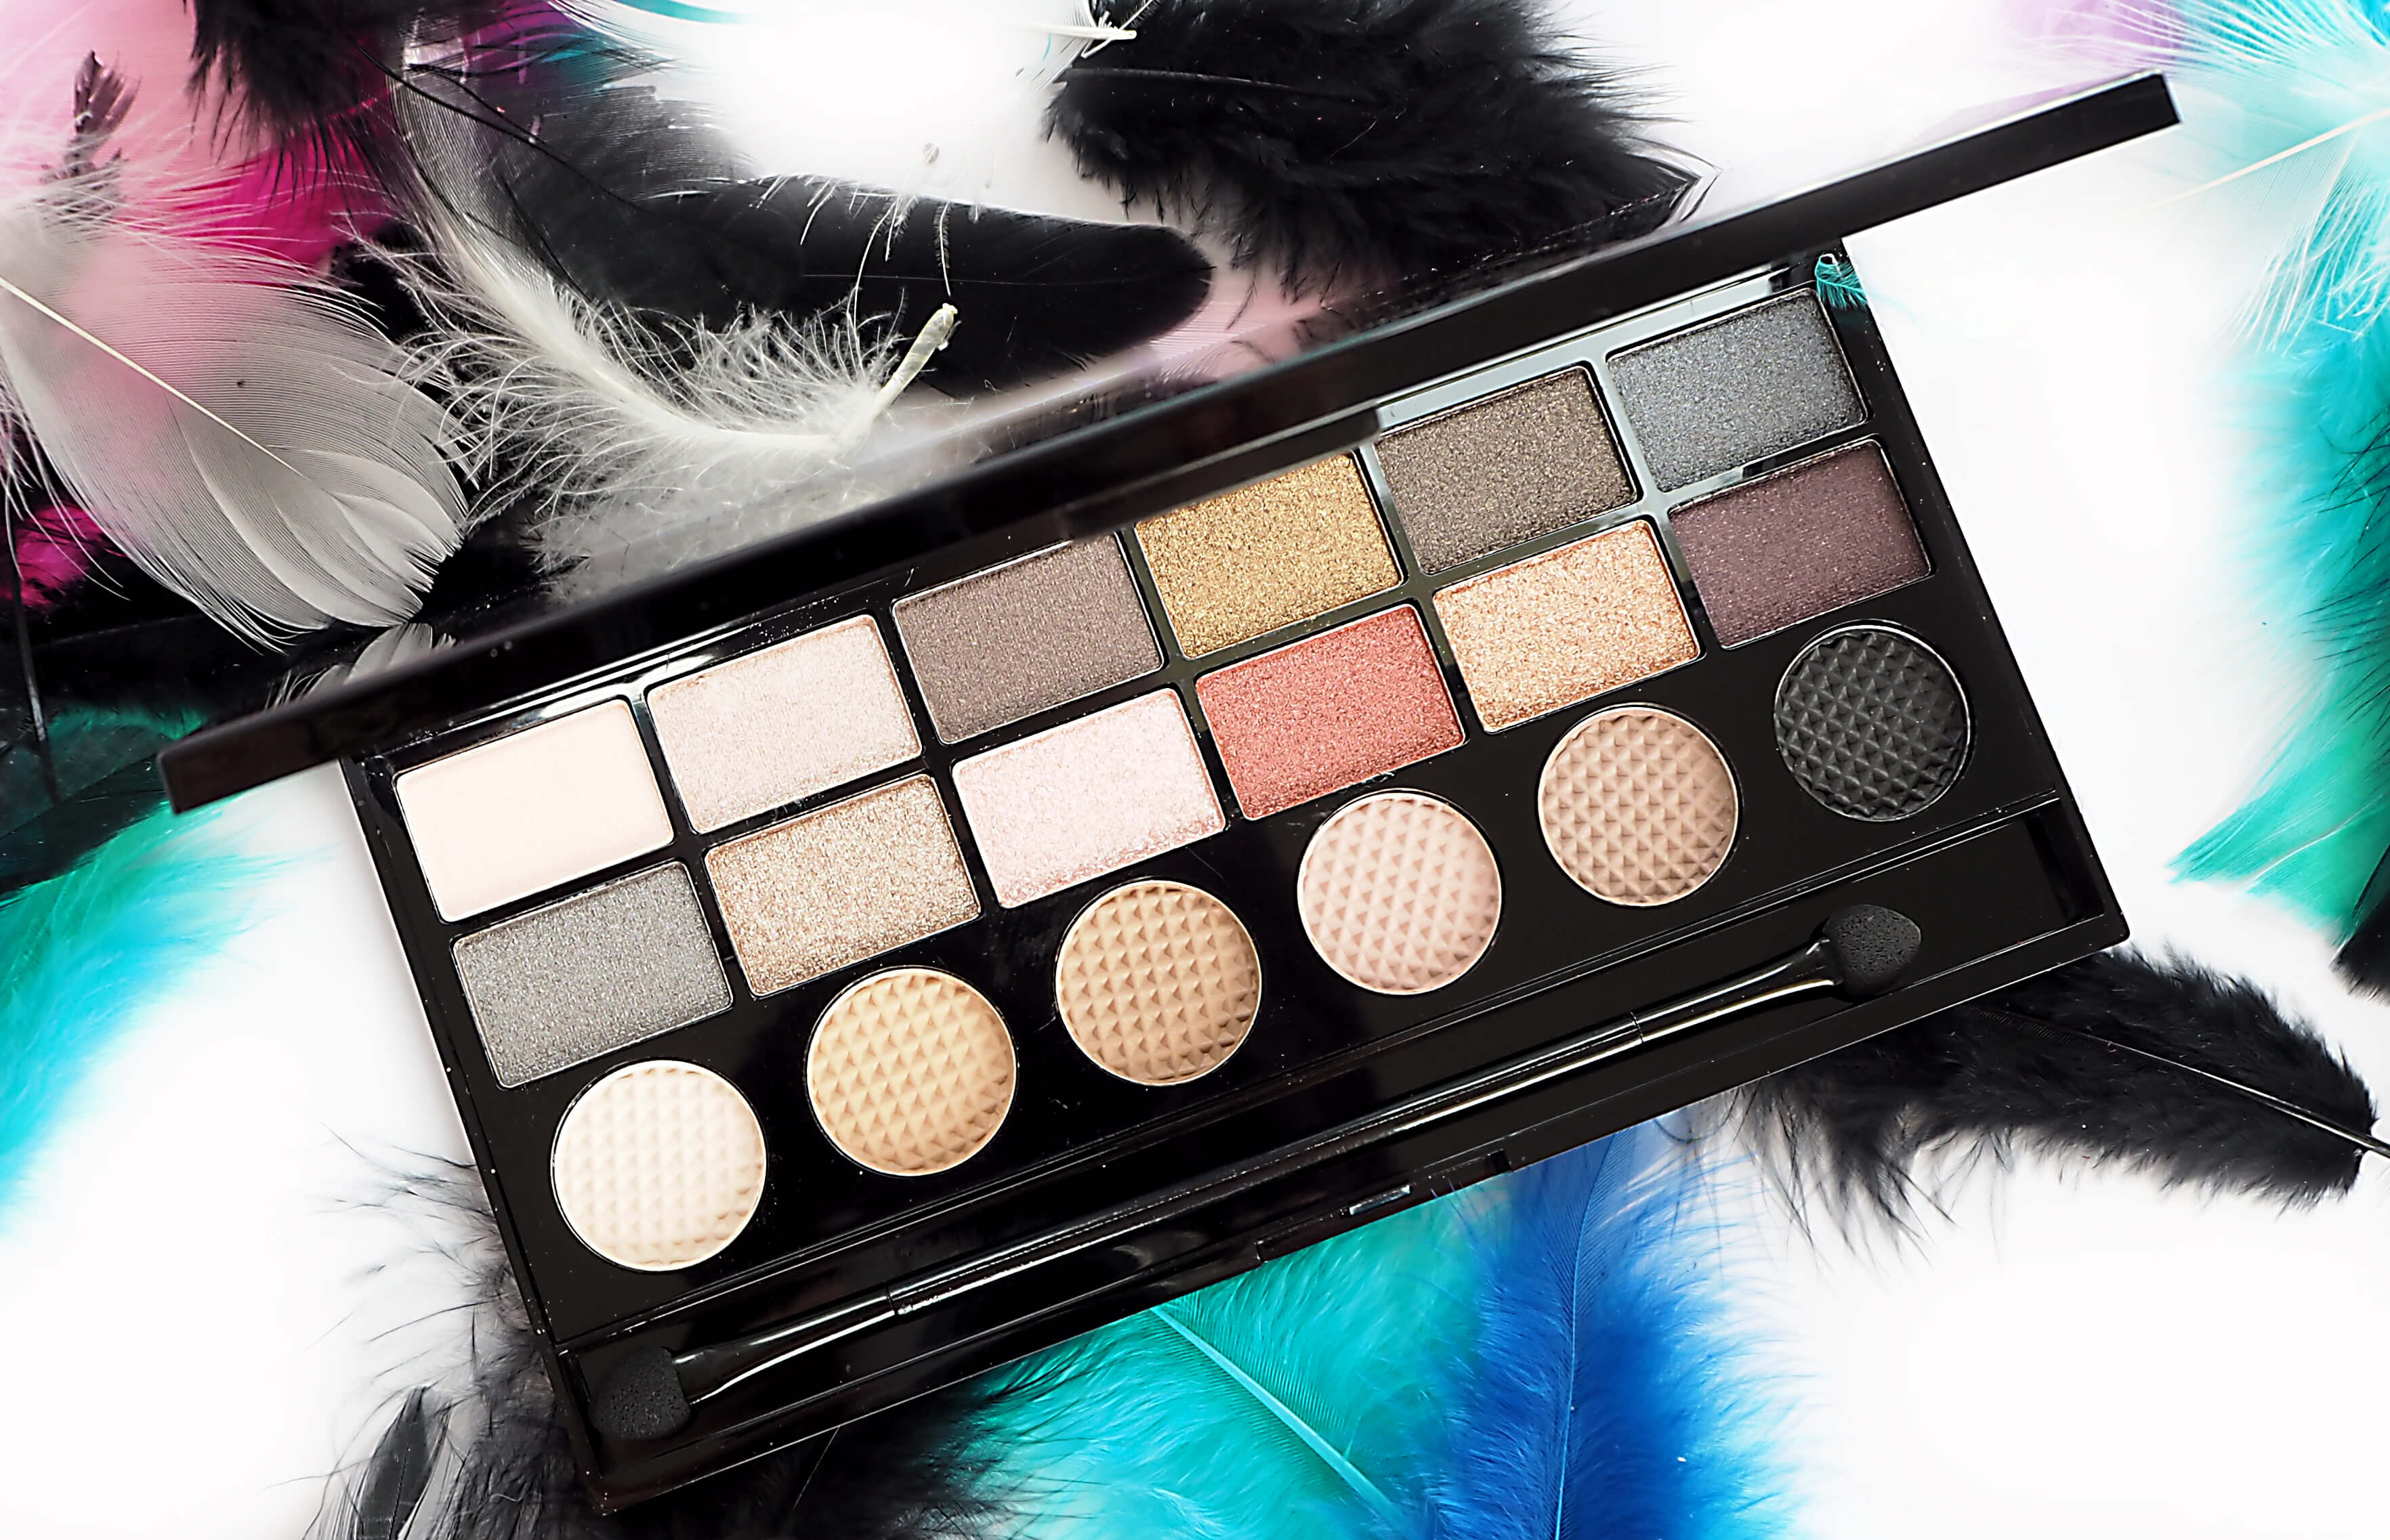 Recenzja MAKEUP REVOLUTION SALVATION PALETTE Run Boy Run